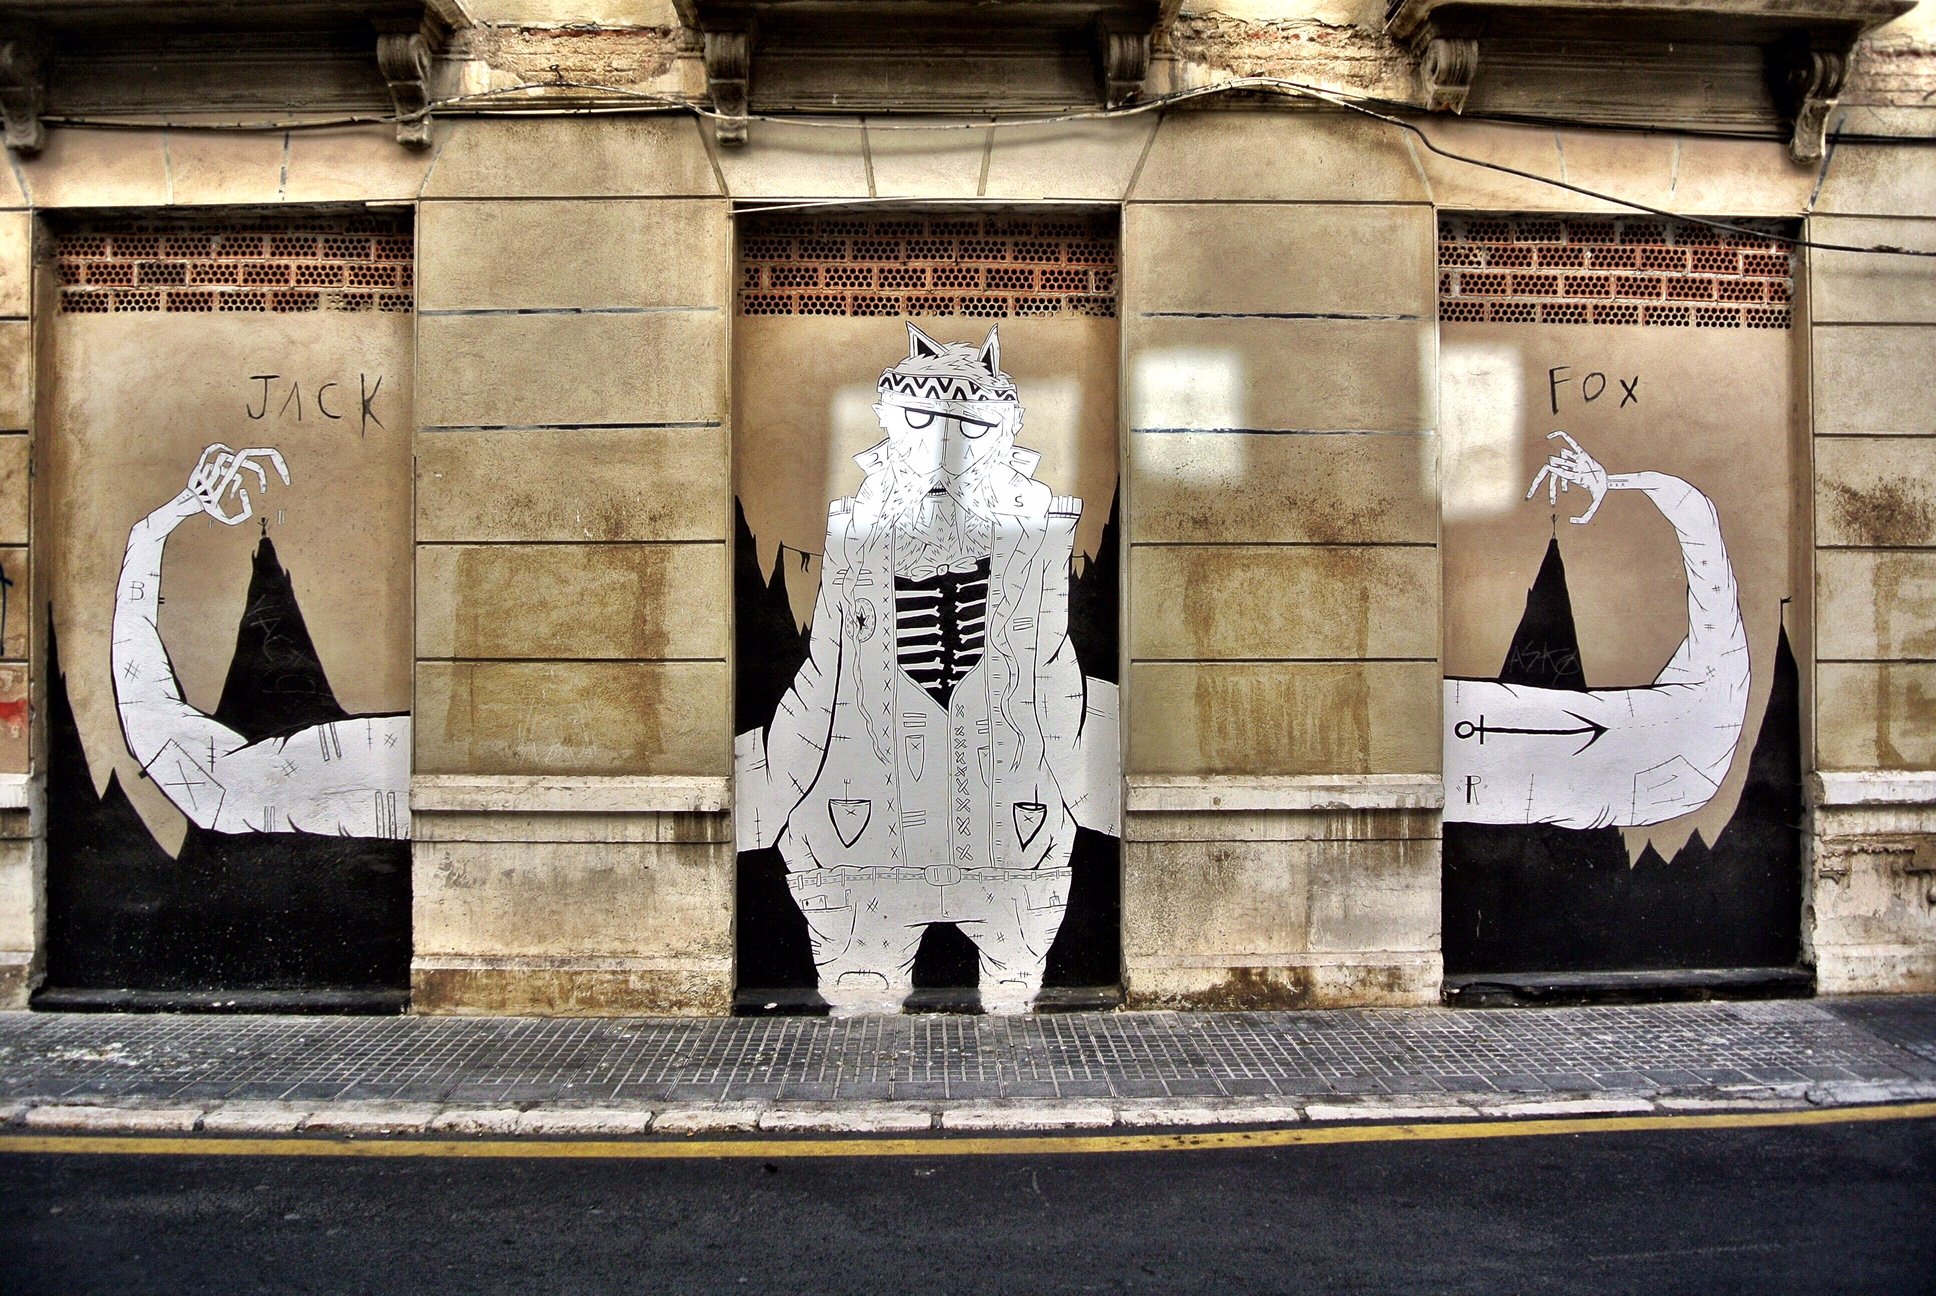 Devote an hour or so to explore (and photograph) the street art scene in Málaga